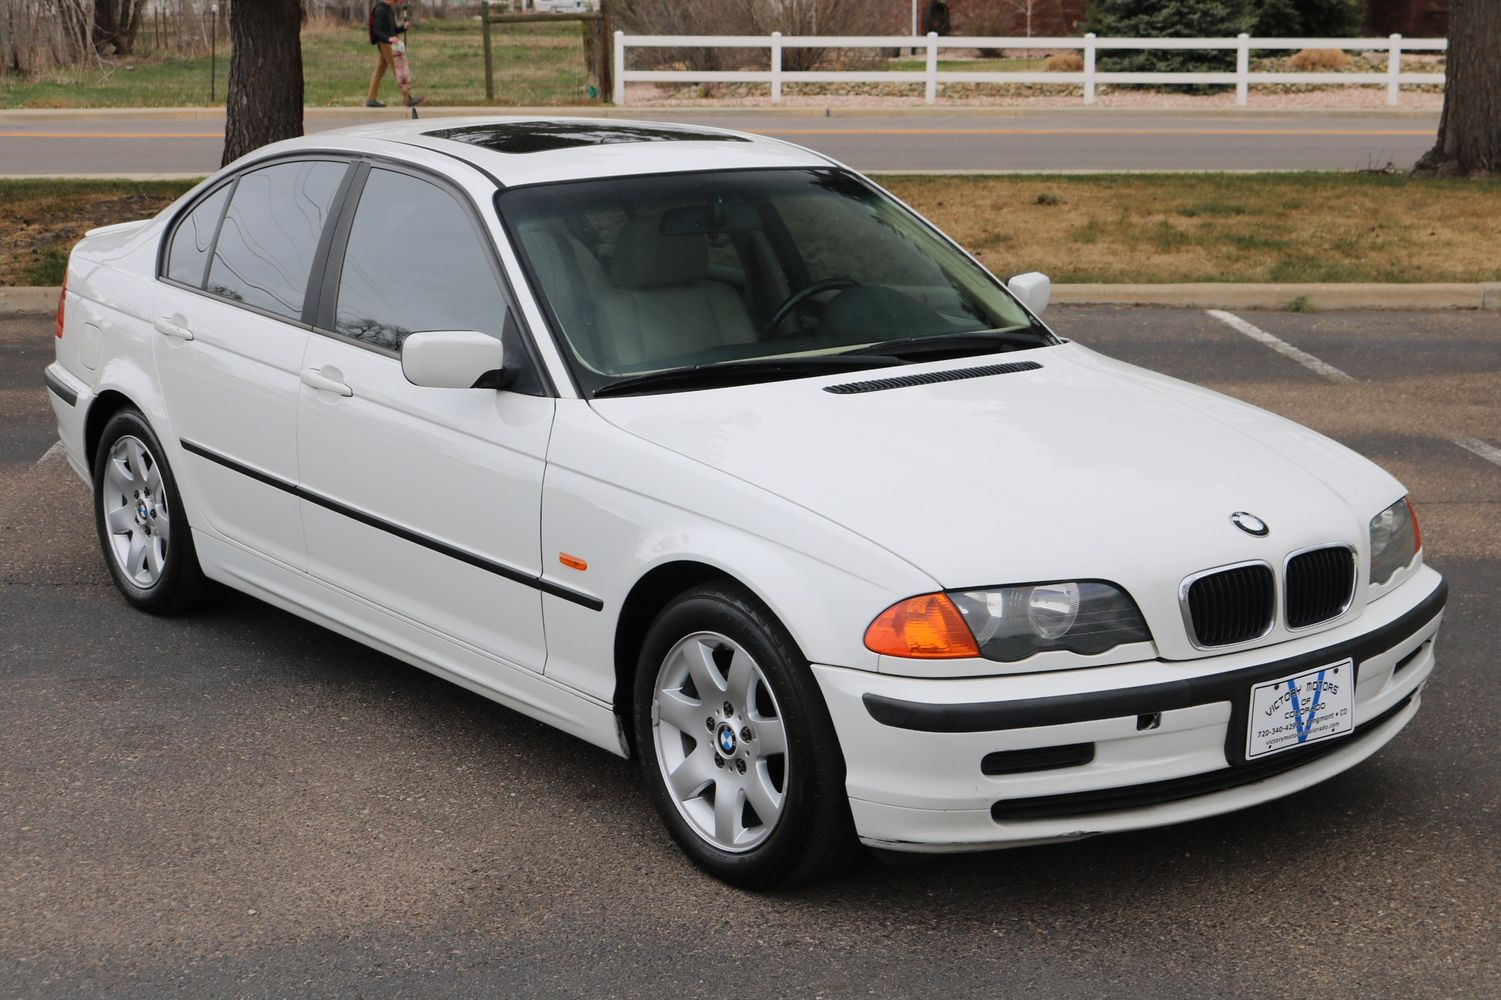 2000 BMW 323i | Victory Motors of Colorado